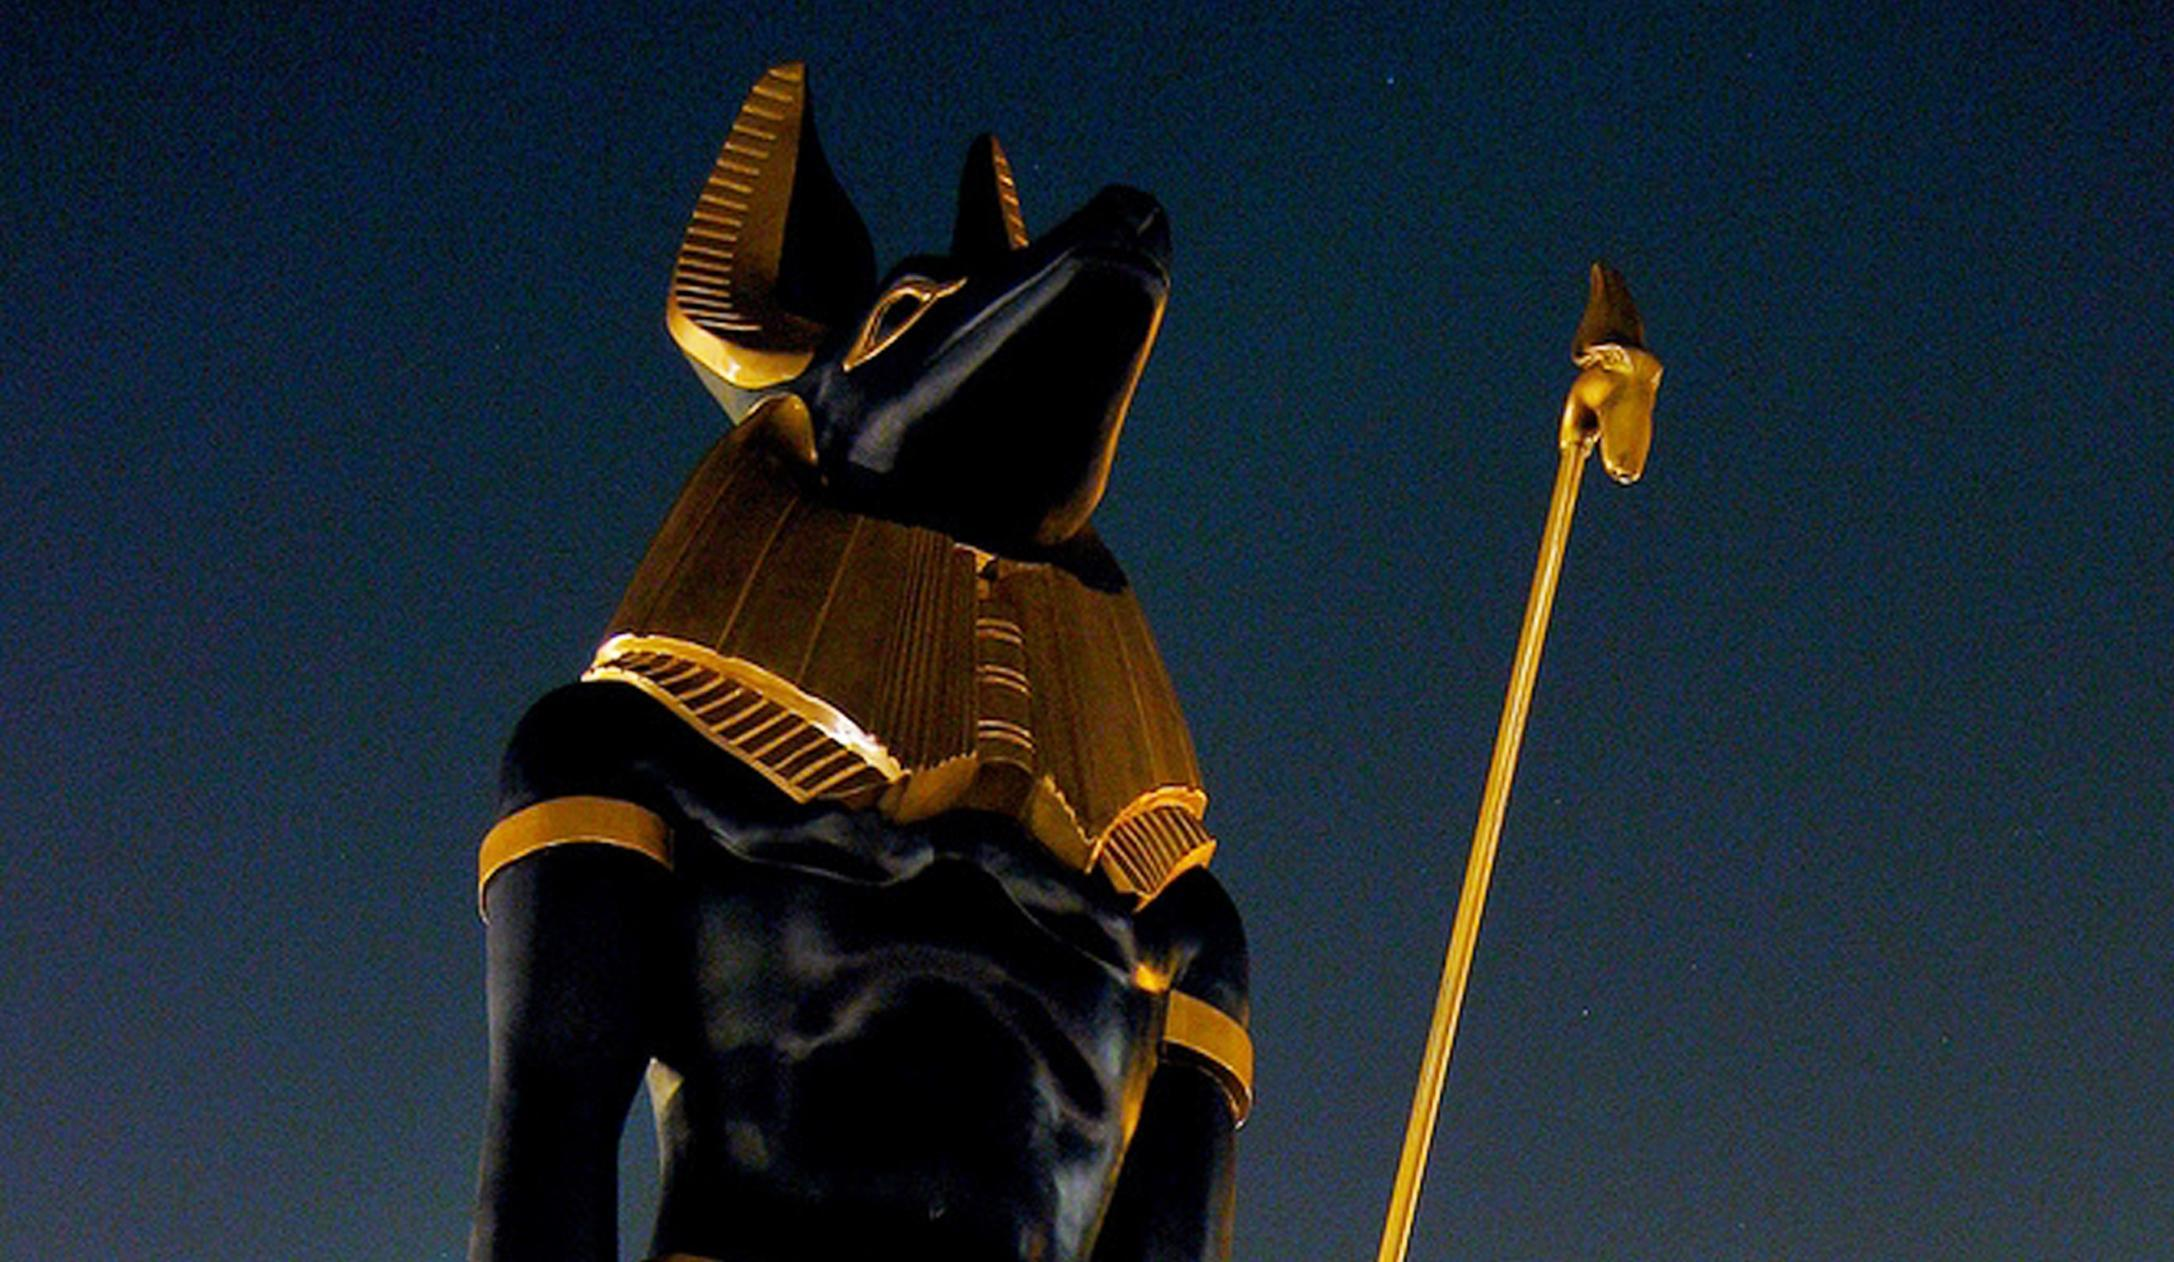 anubis wallpaper for pc - photo #5